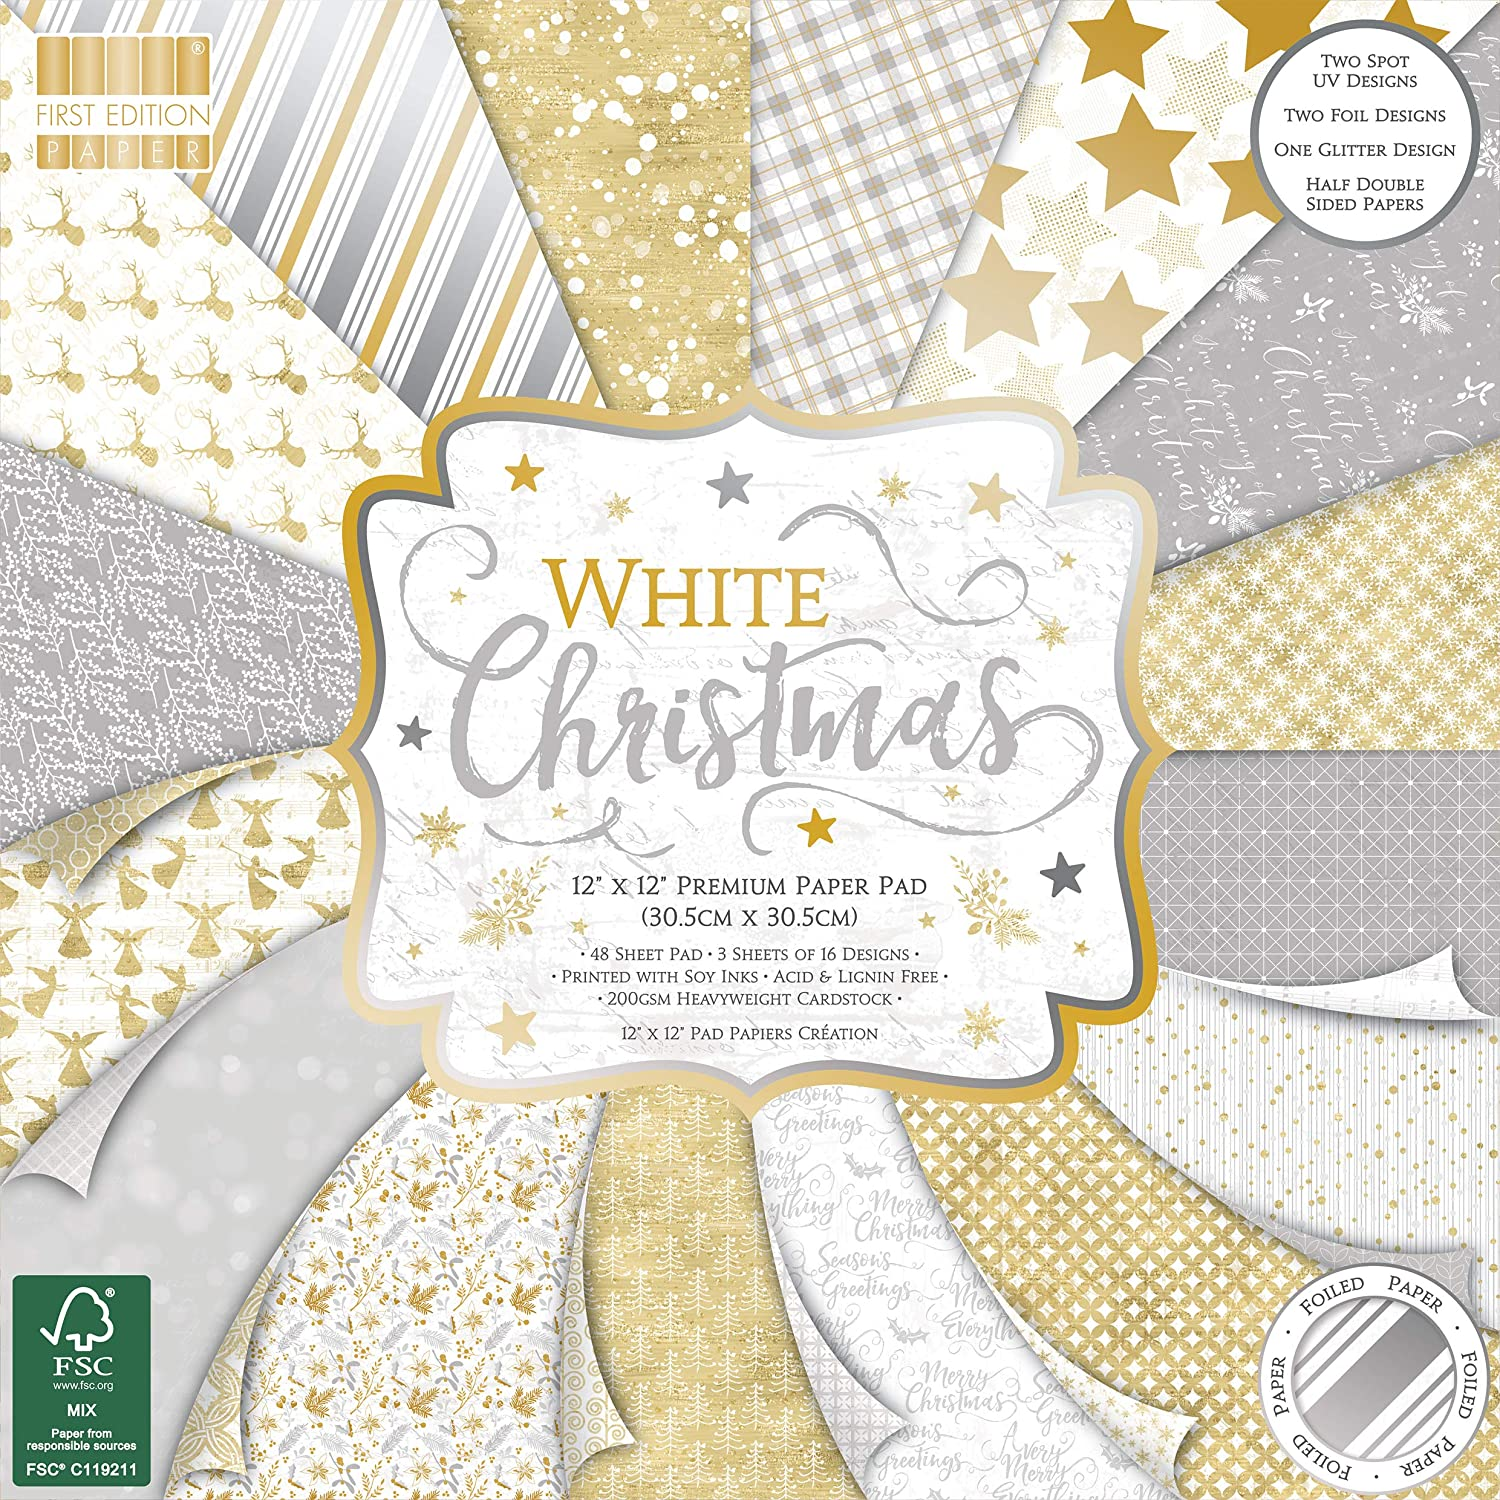 Scrapbooking Soy Inks-for Card Making Home Decor /& Papercraft 200gsm Heavyweight Cardstock Acid /& Lignin Free First Edition FSC 12x12 White Christmas-48 Sheet Pad One Size Multi-Colour